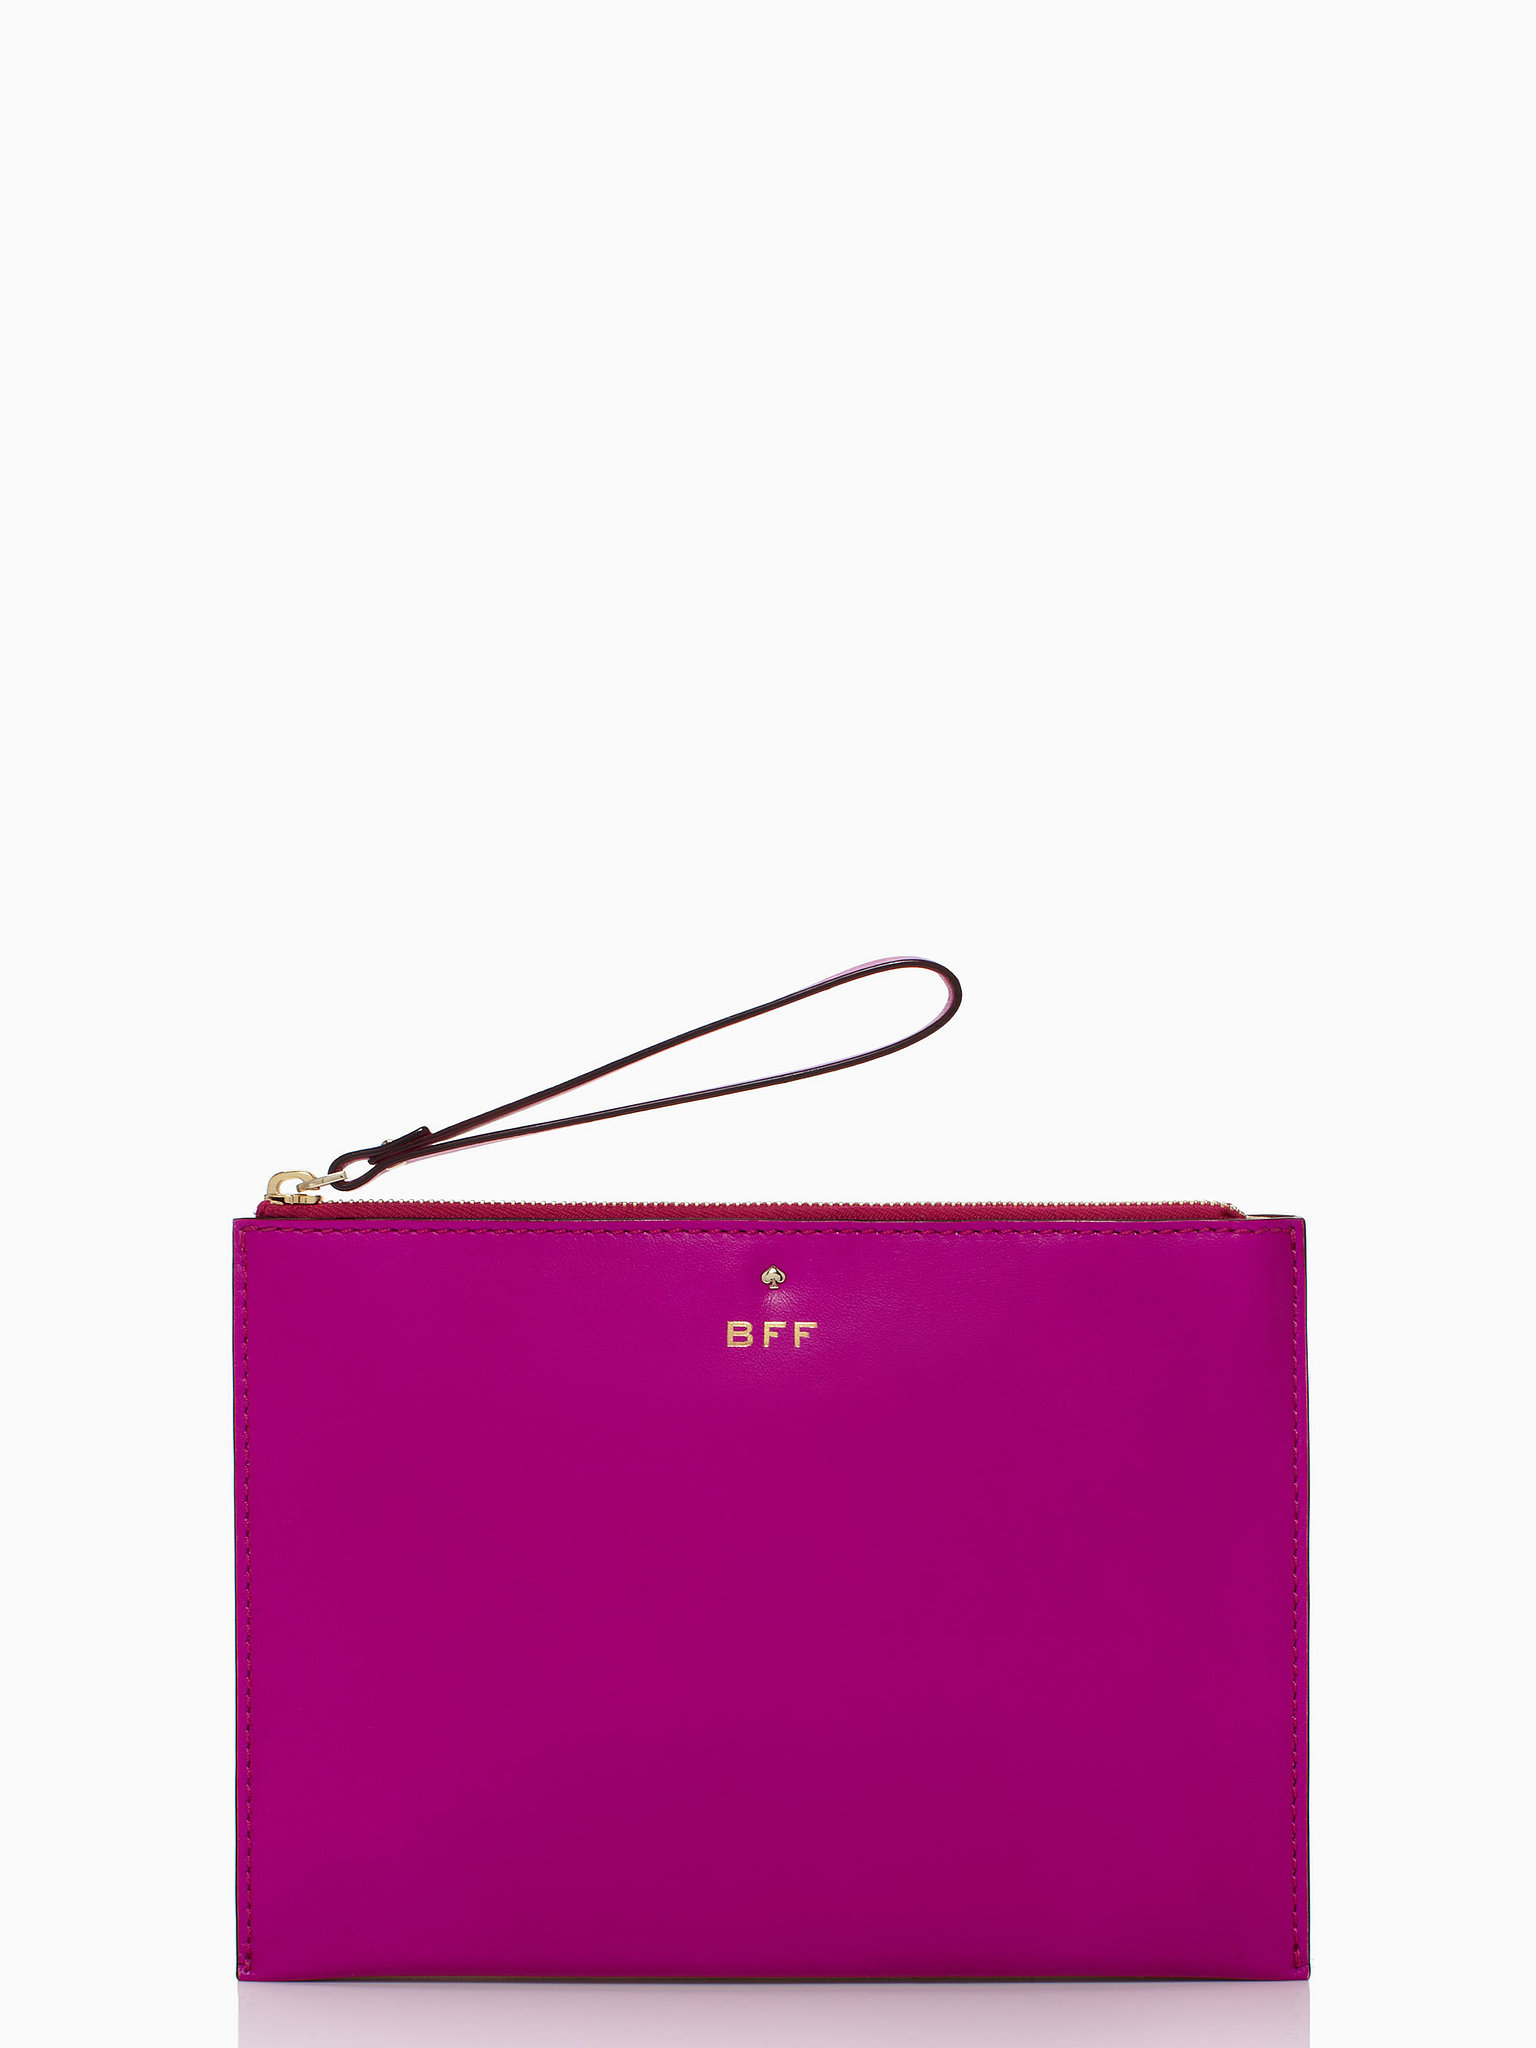 Kate Spade New York Wedding Belles Medium BFF Wristlet ($69, originally $128)